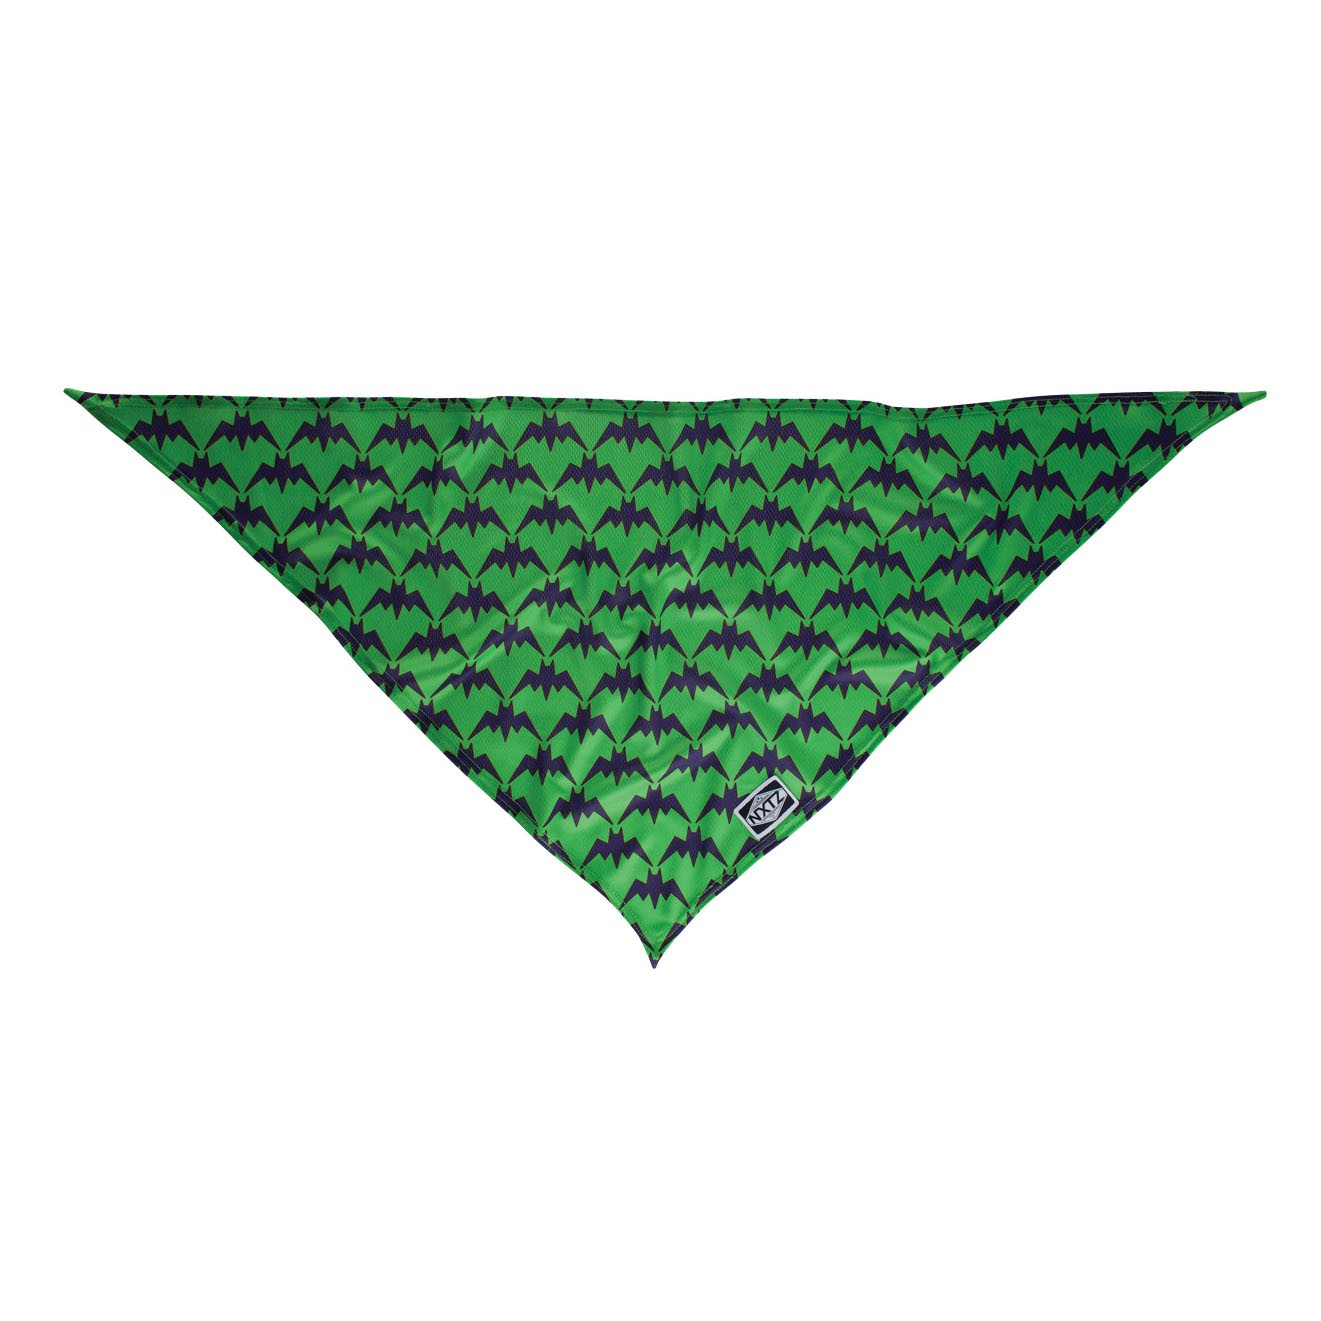 Šátek NXTZ Single Layer Bandana bad boy